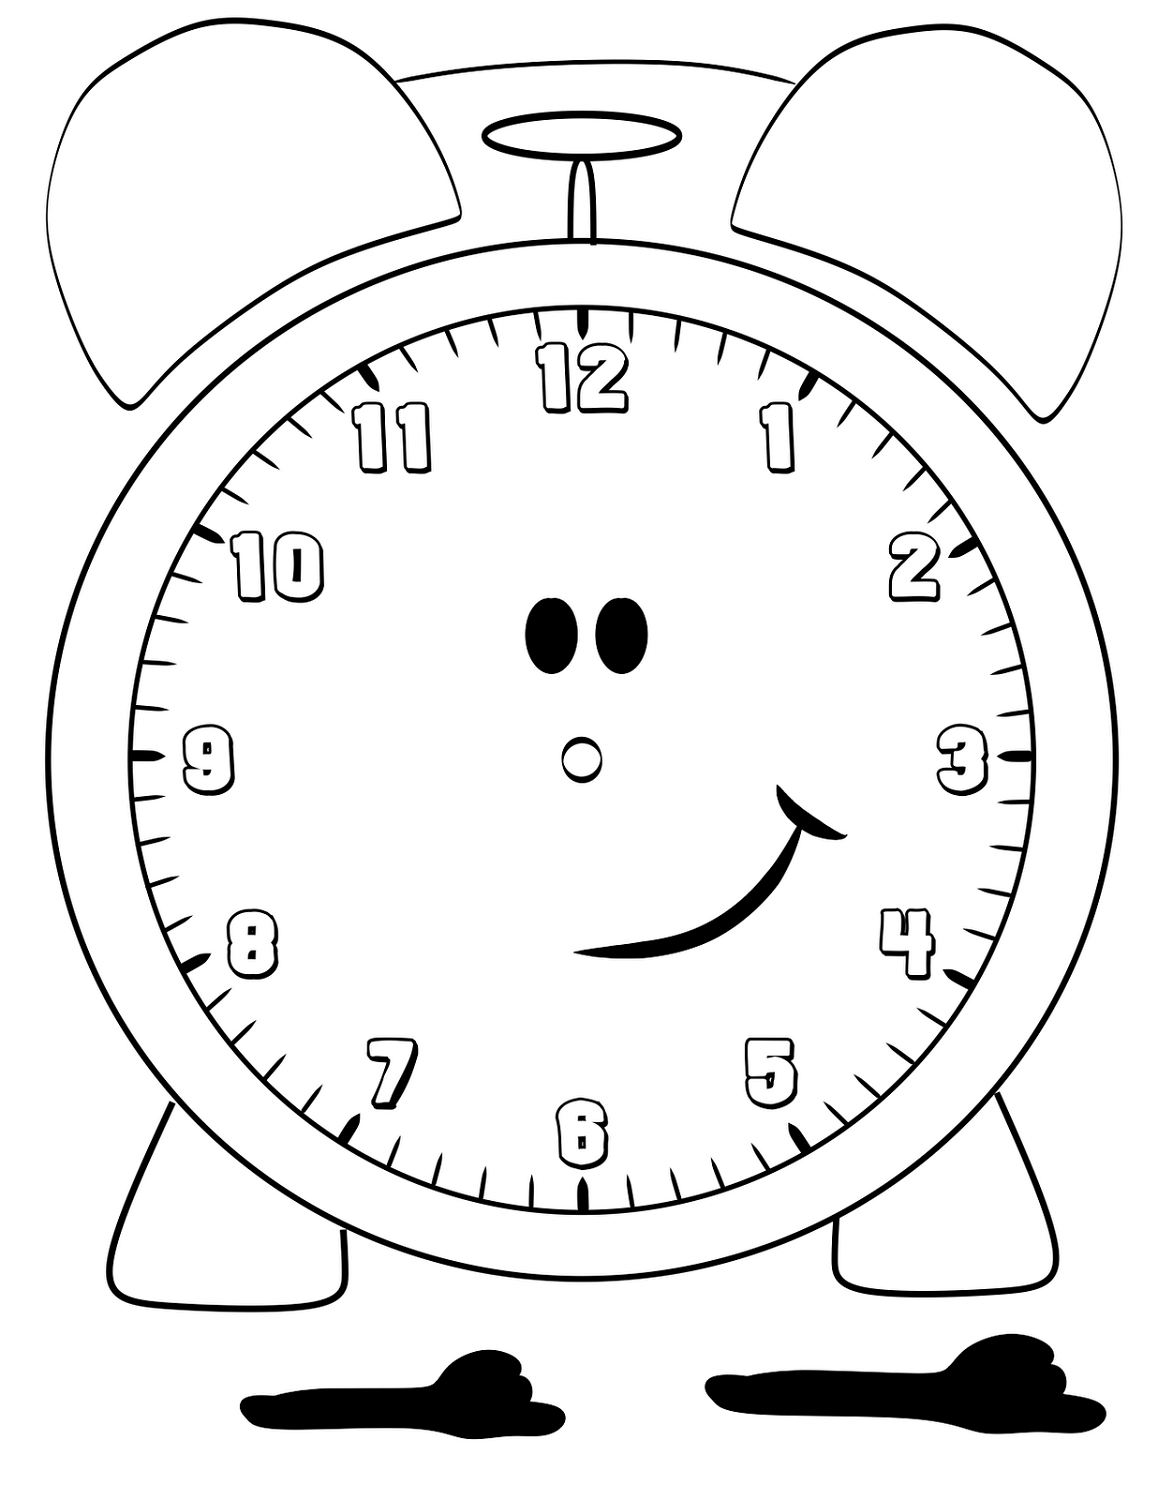 Printable Clock for kids